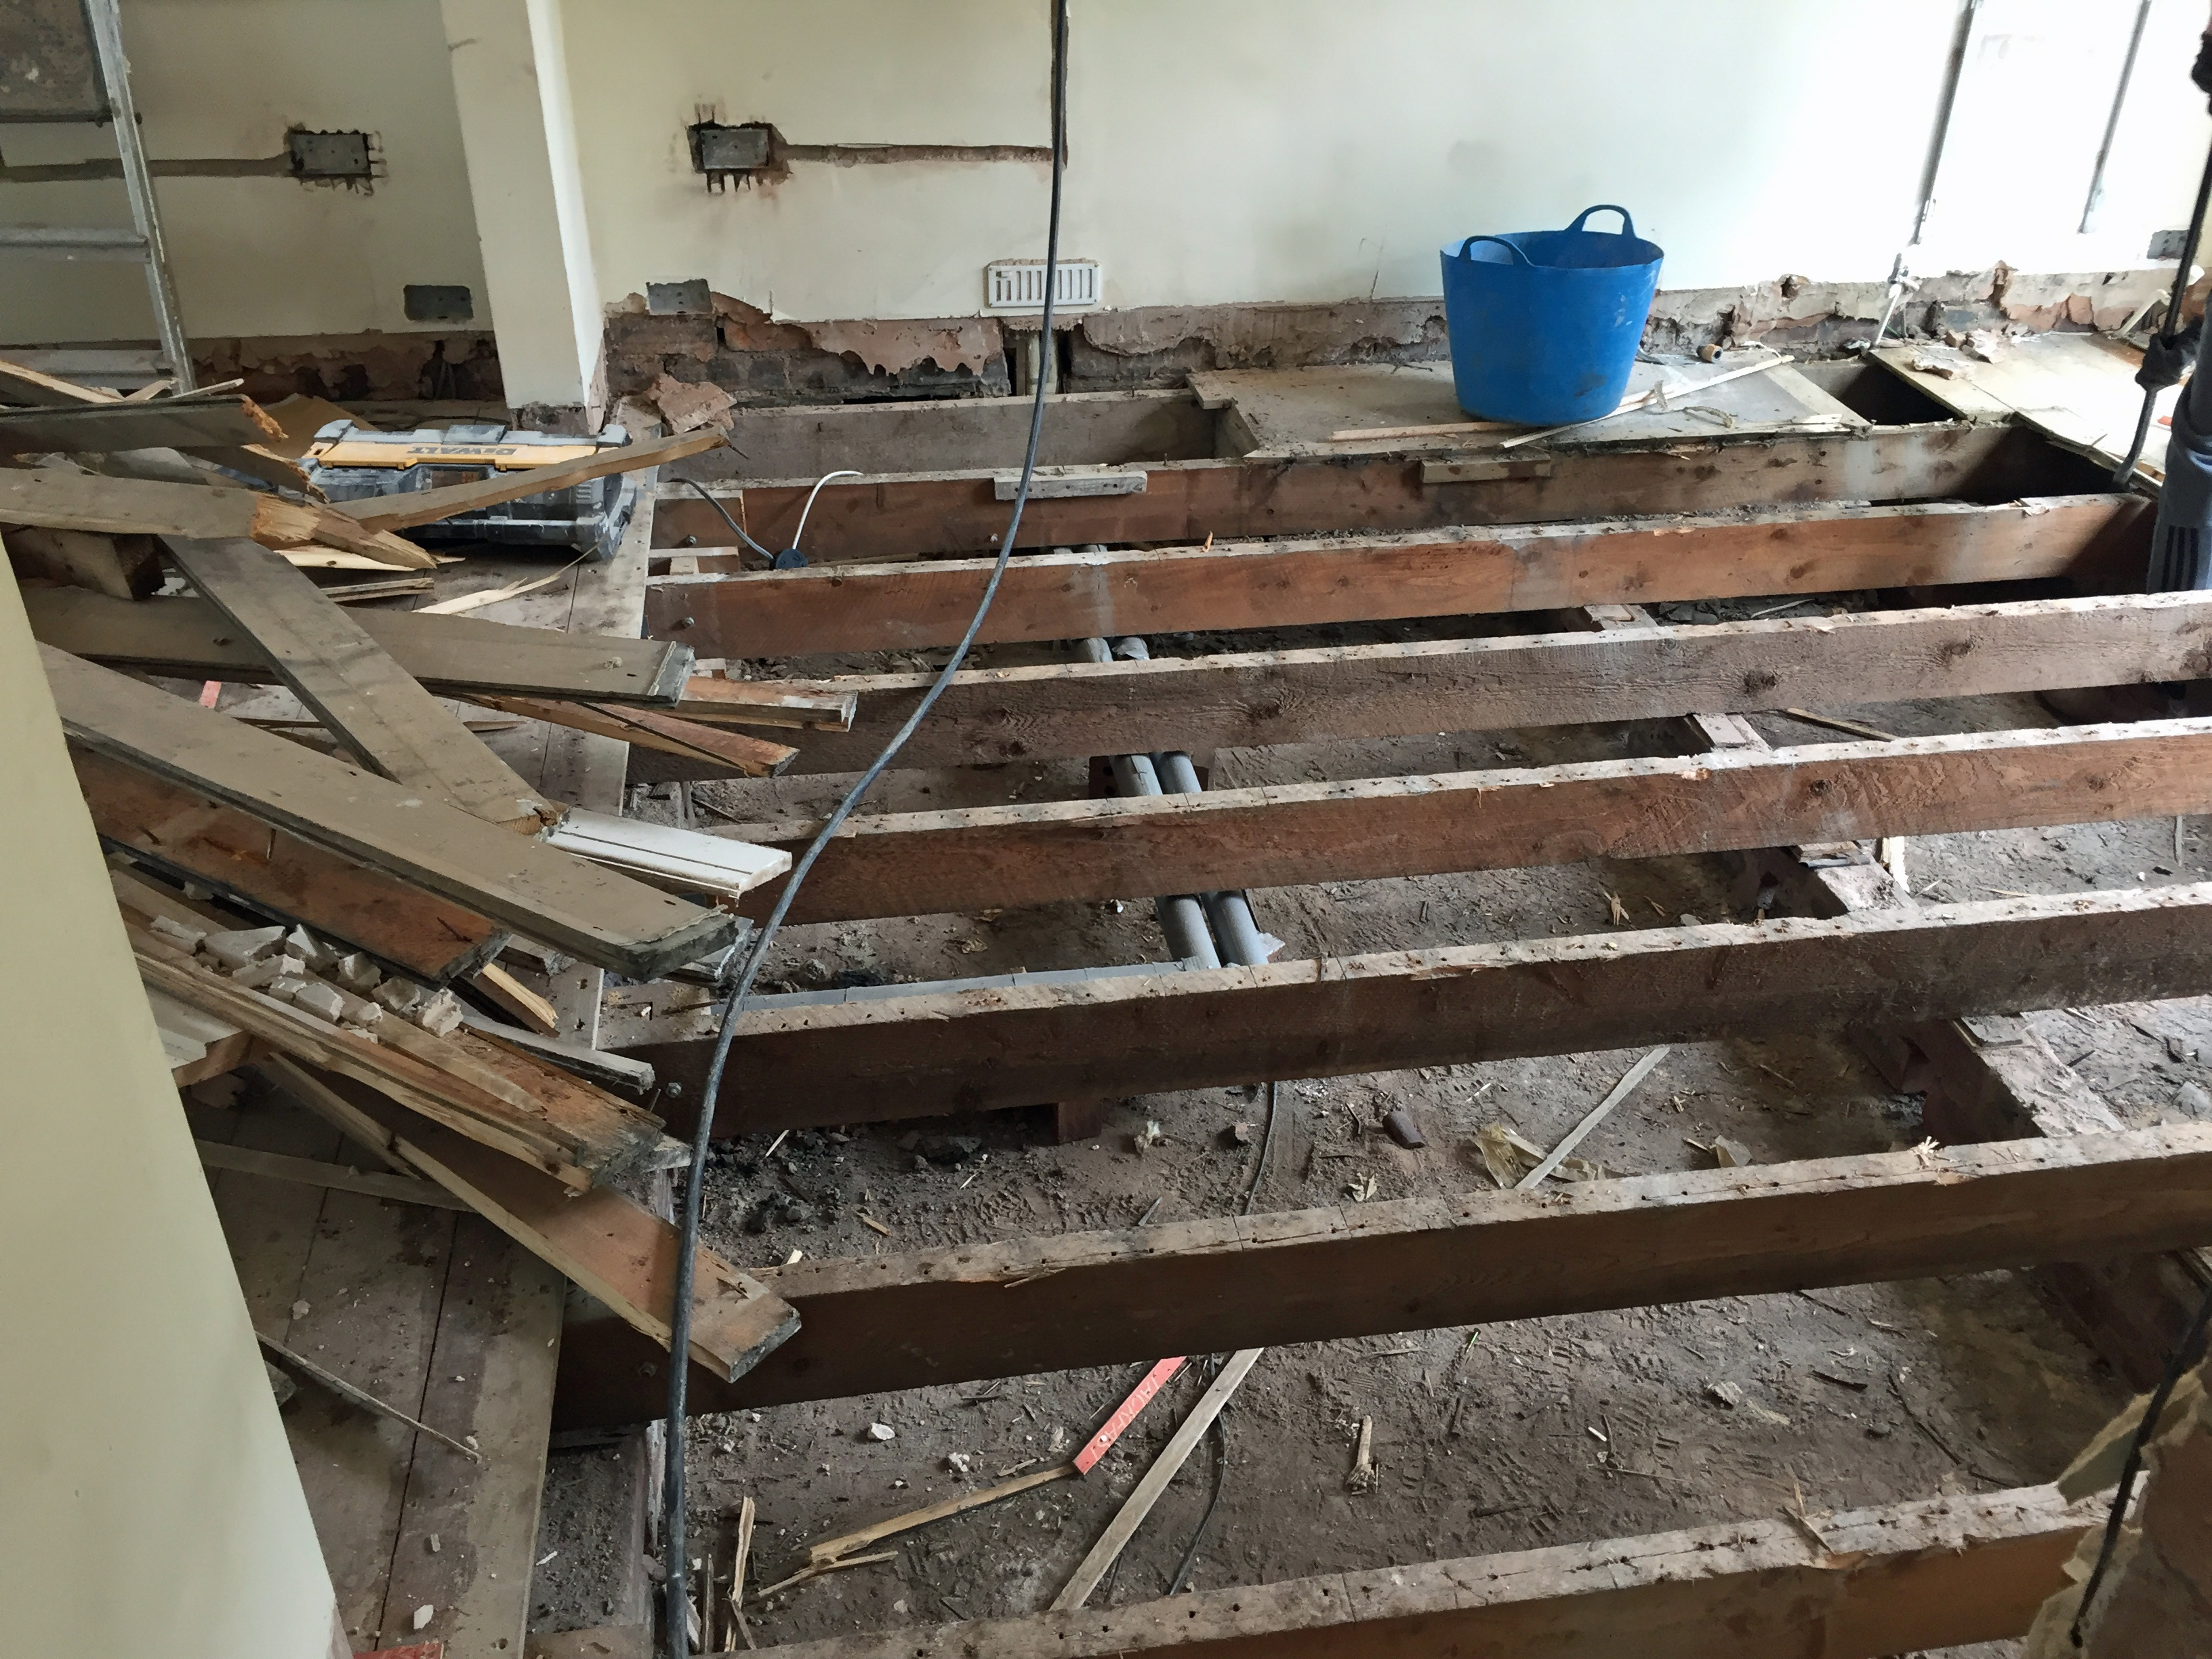 Home Renovation Blog: Demolition Begins